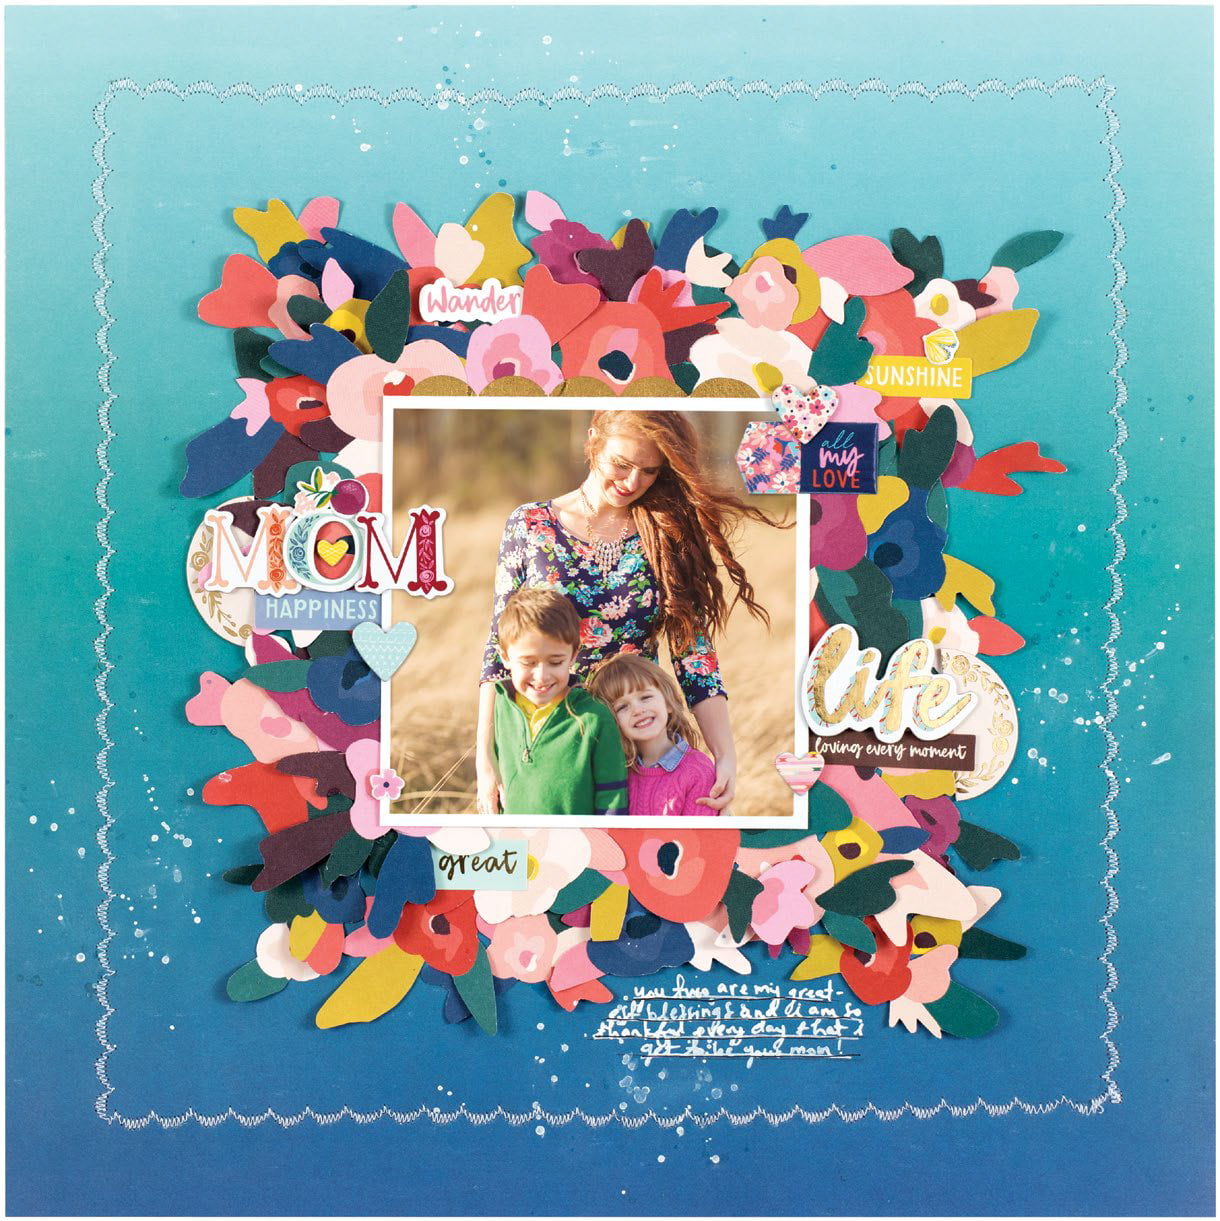 Mom Happiness by Paige Evans - Scrapbook & Cards Today Spring 2018